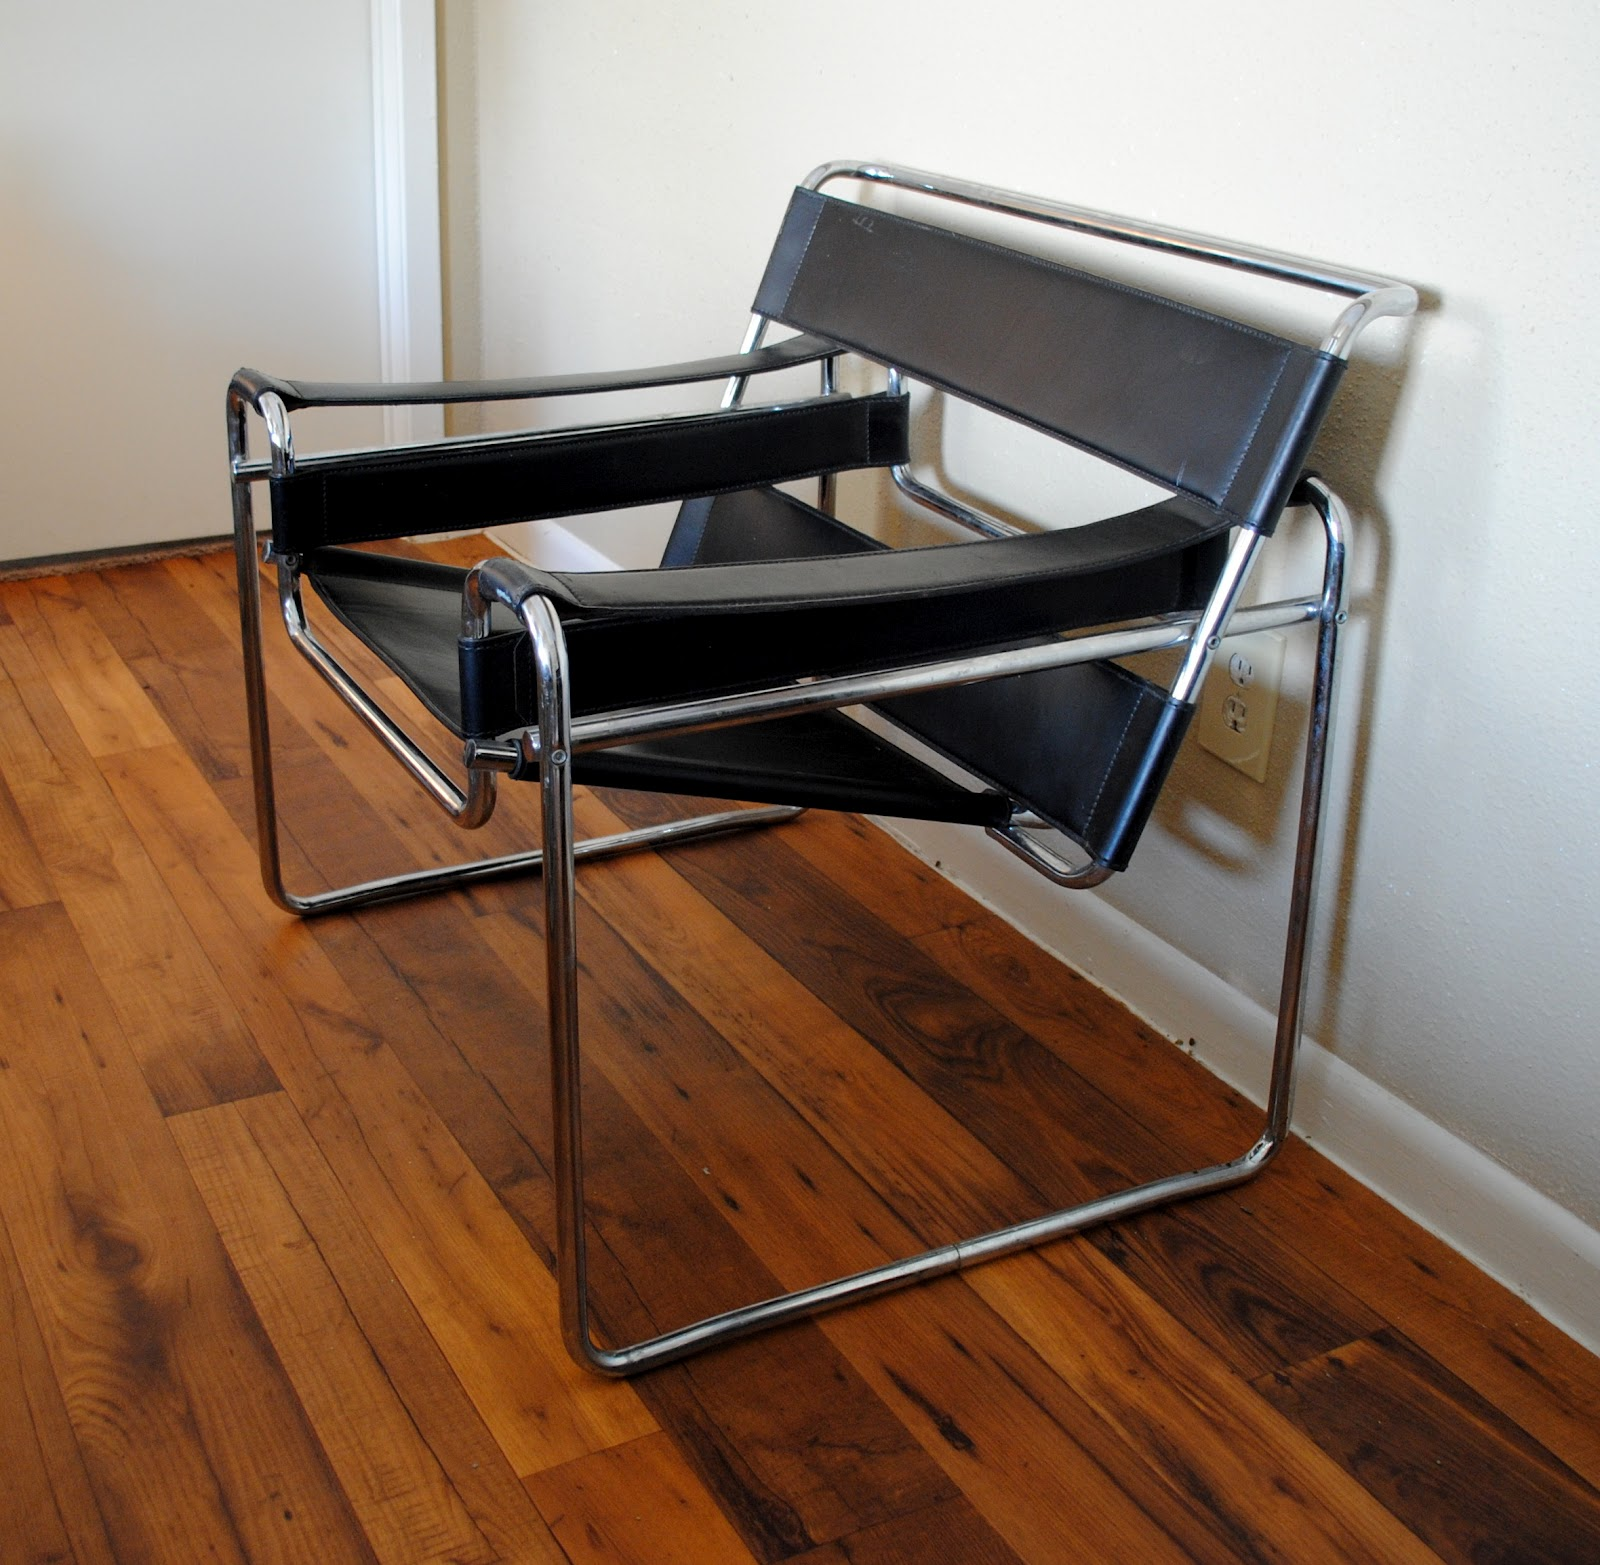 wassily chair replica uk wassily chair wassily chair for sale uk